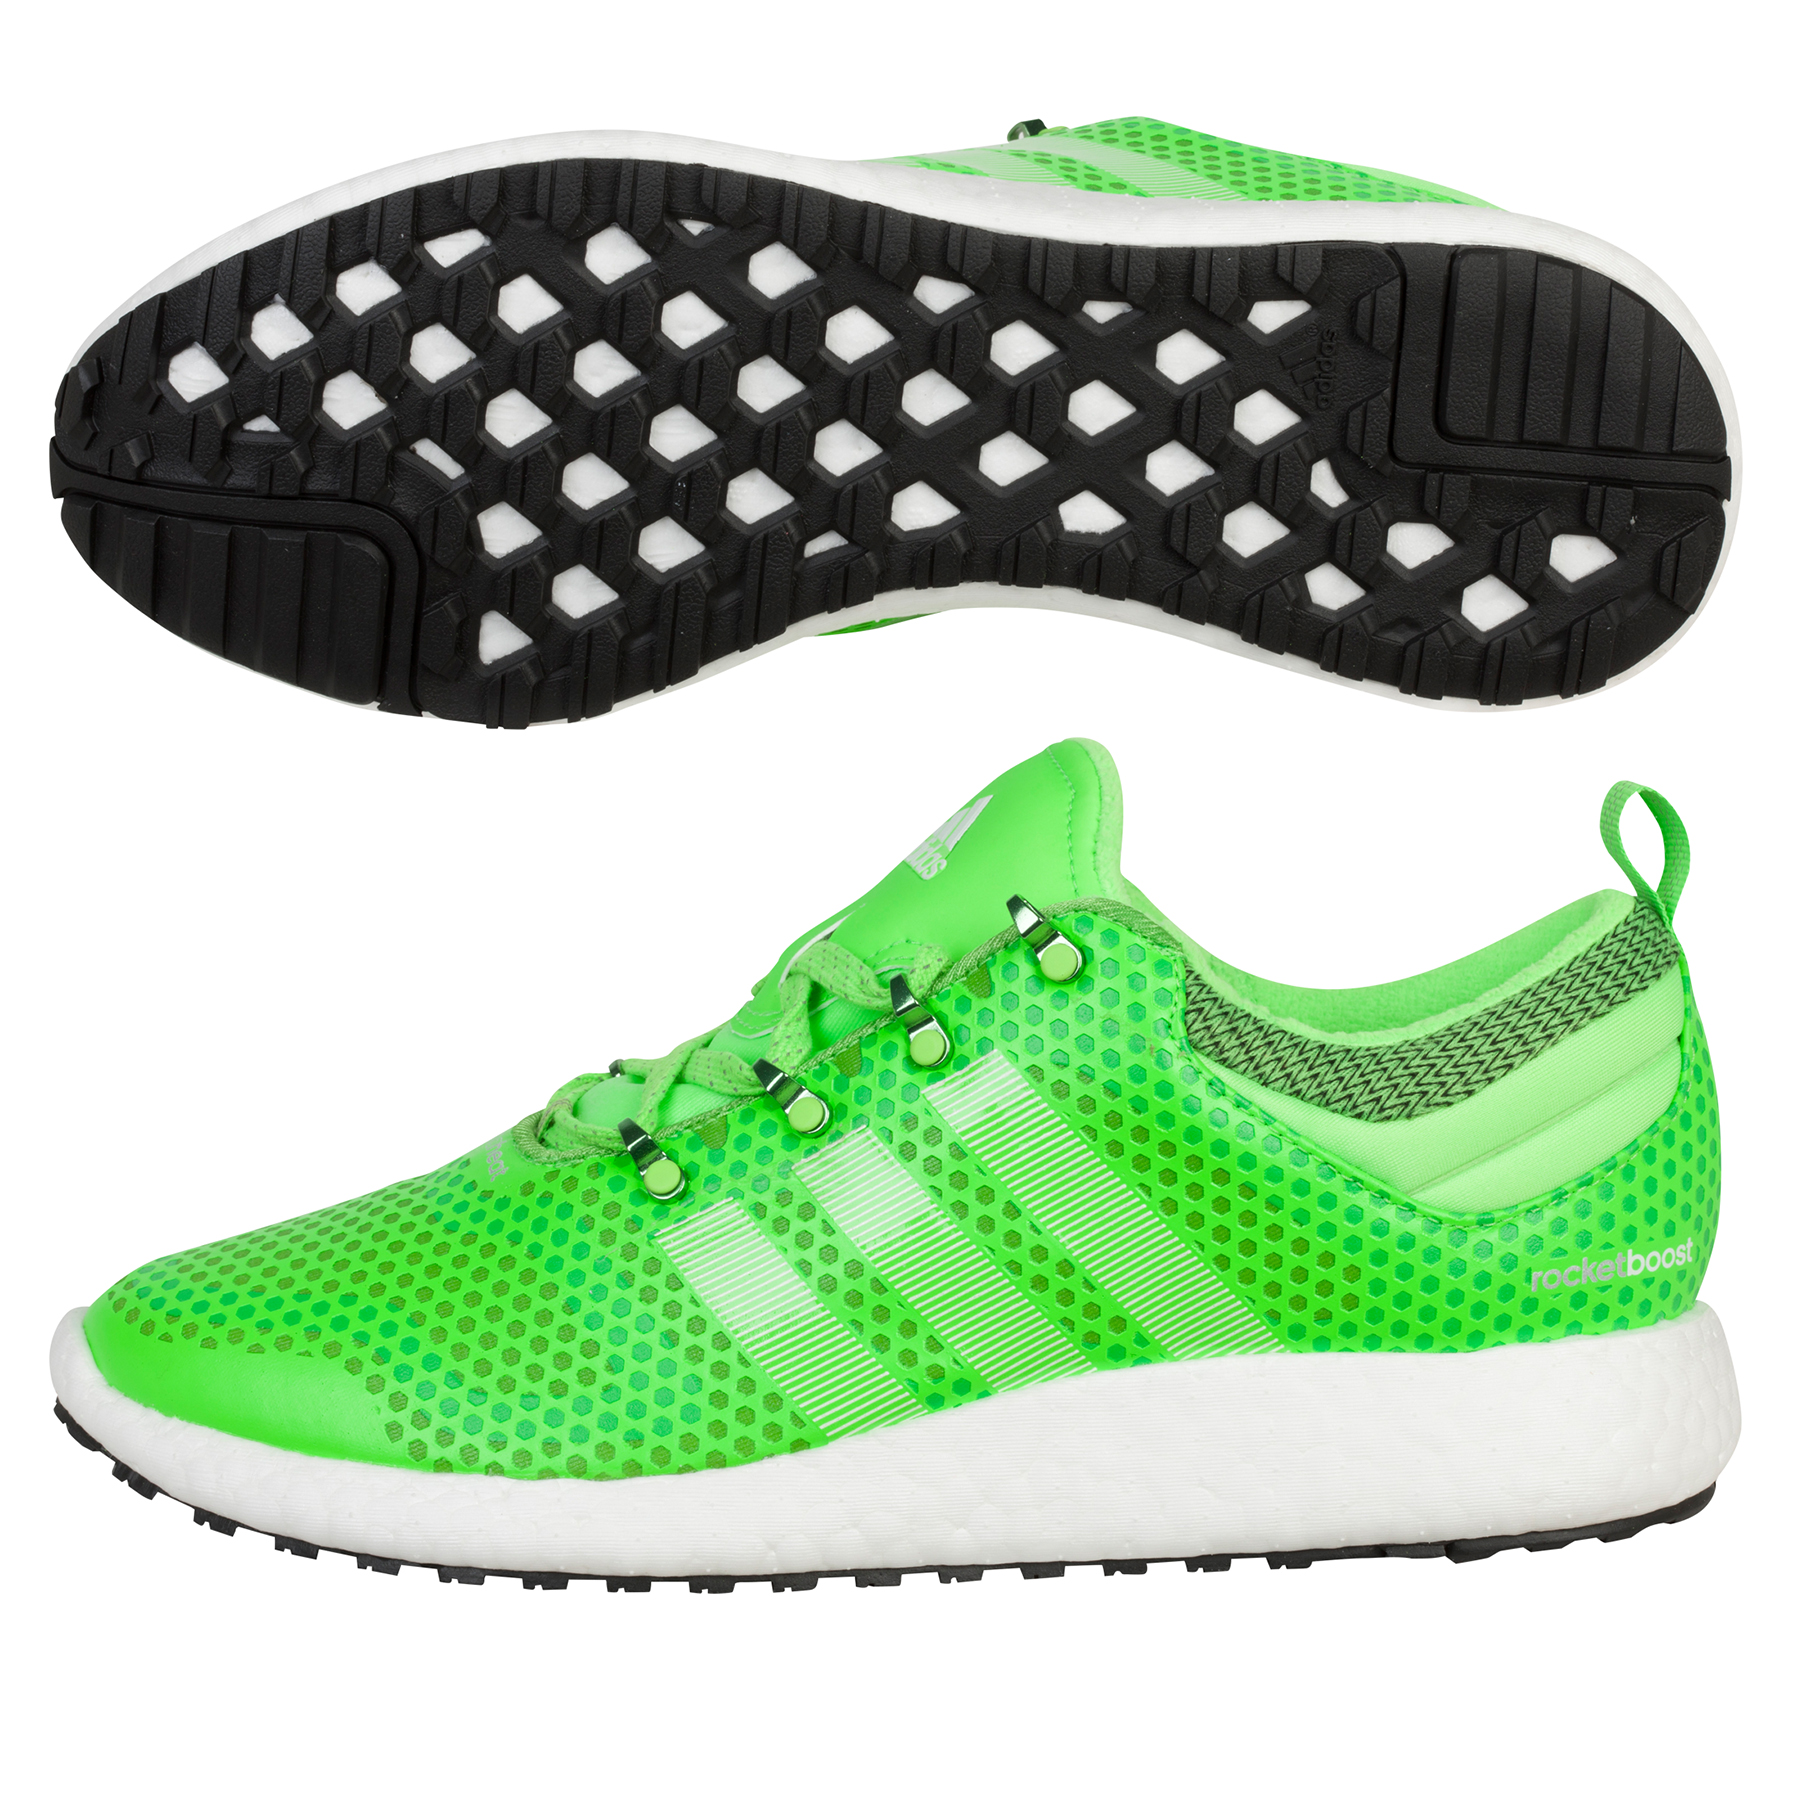 Adidas Climaheat Rocket Boost Trainers Lt Green